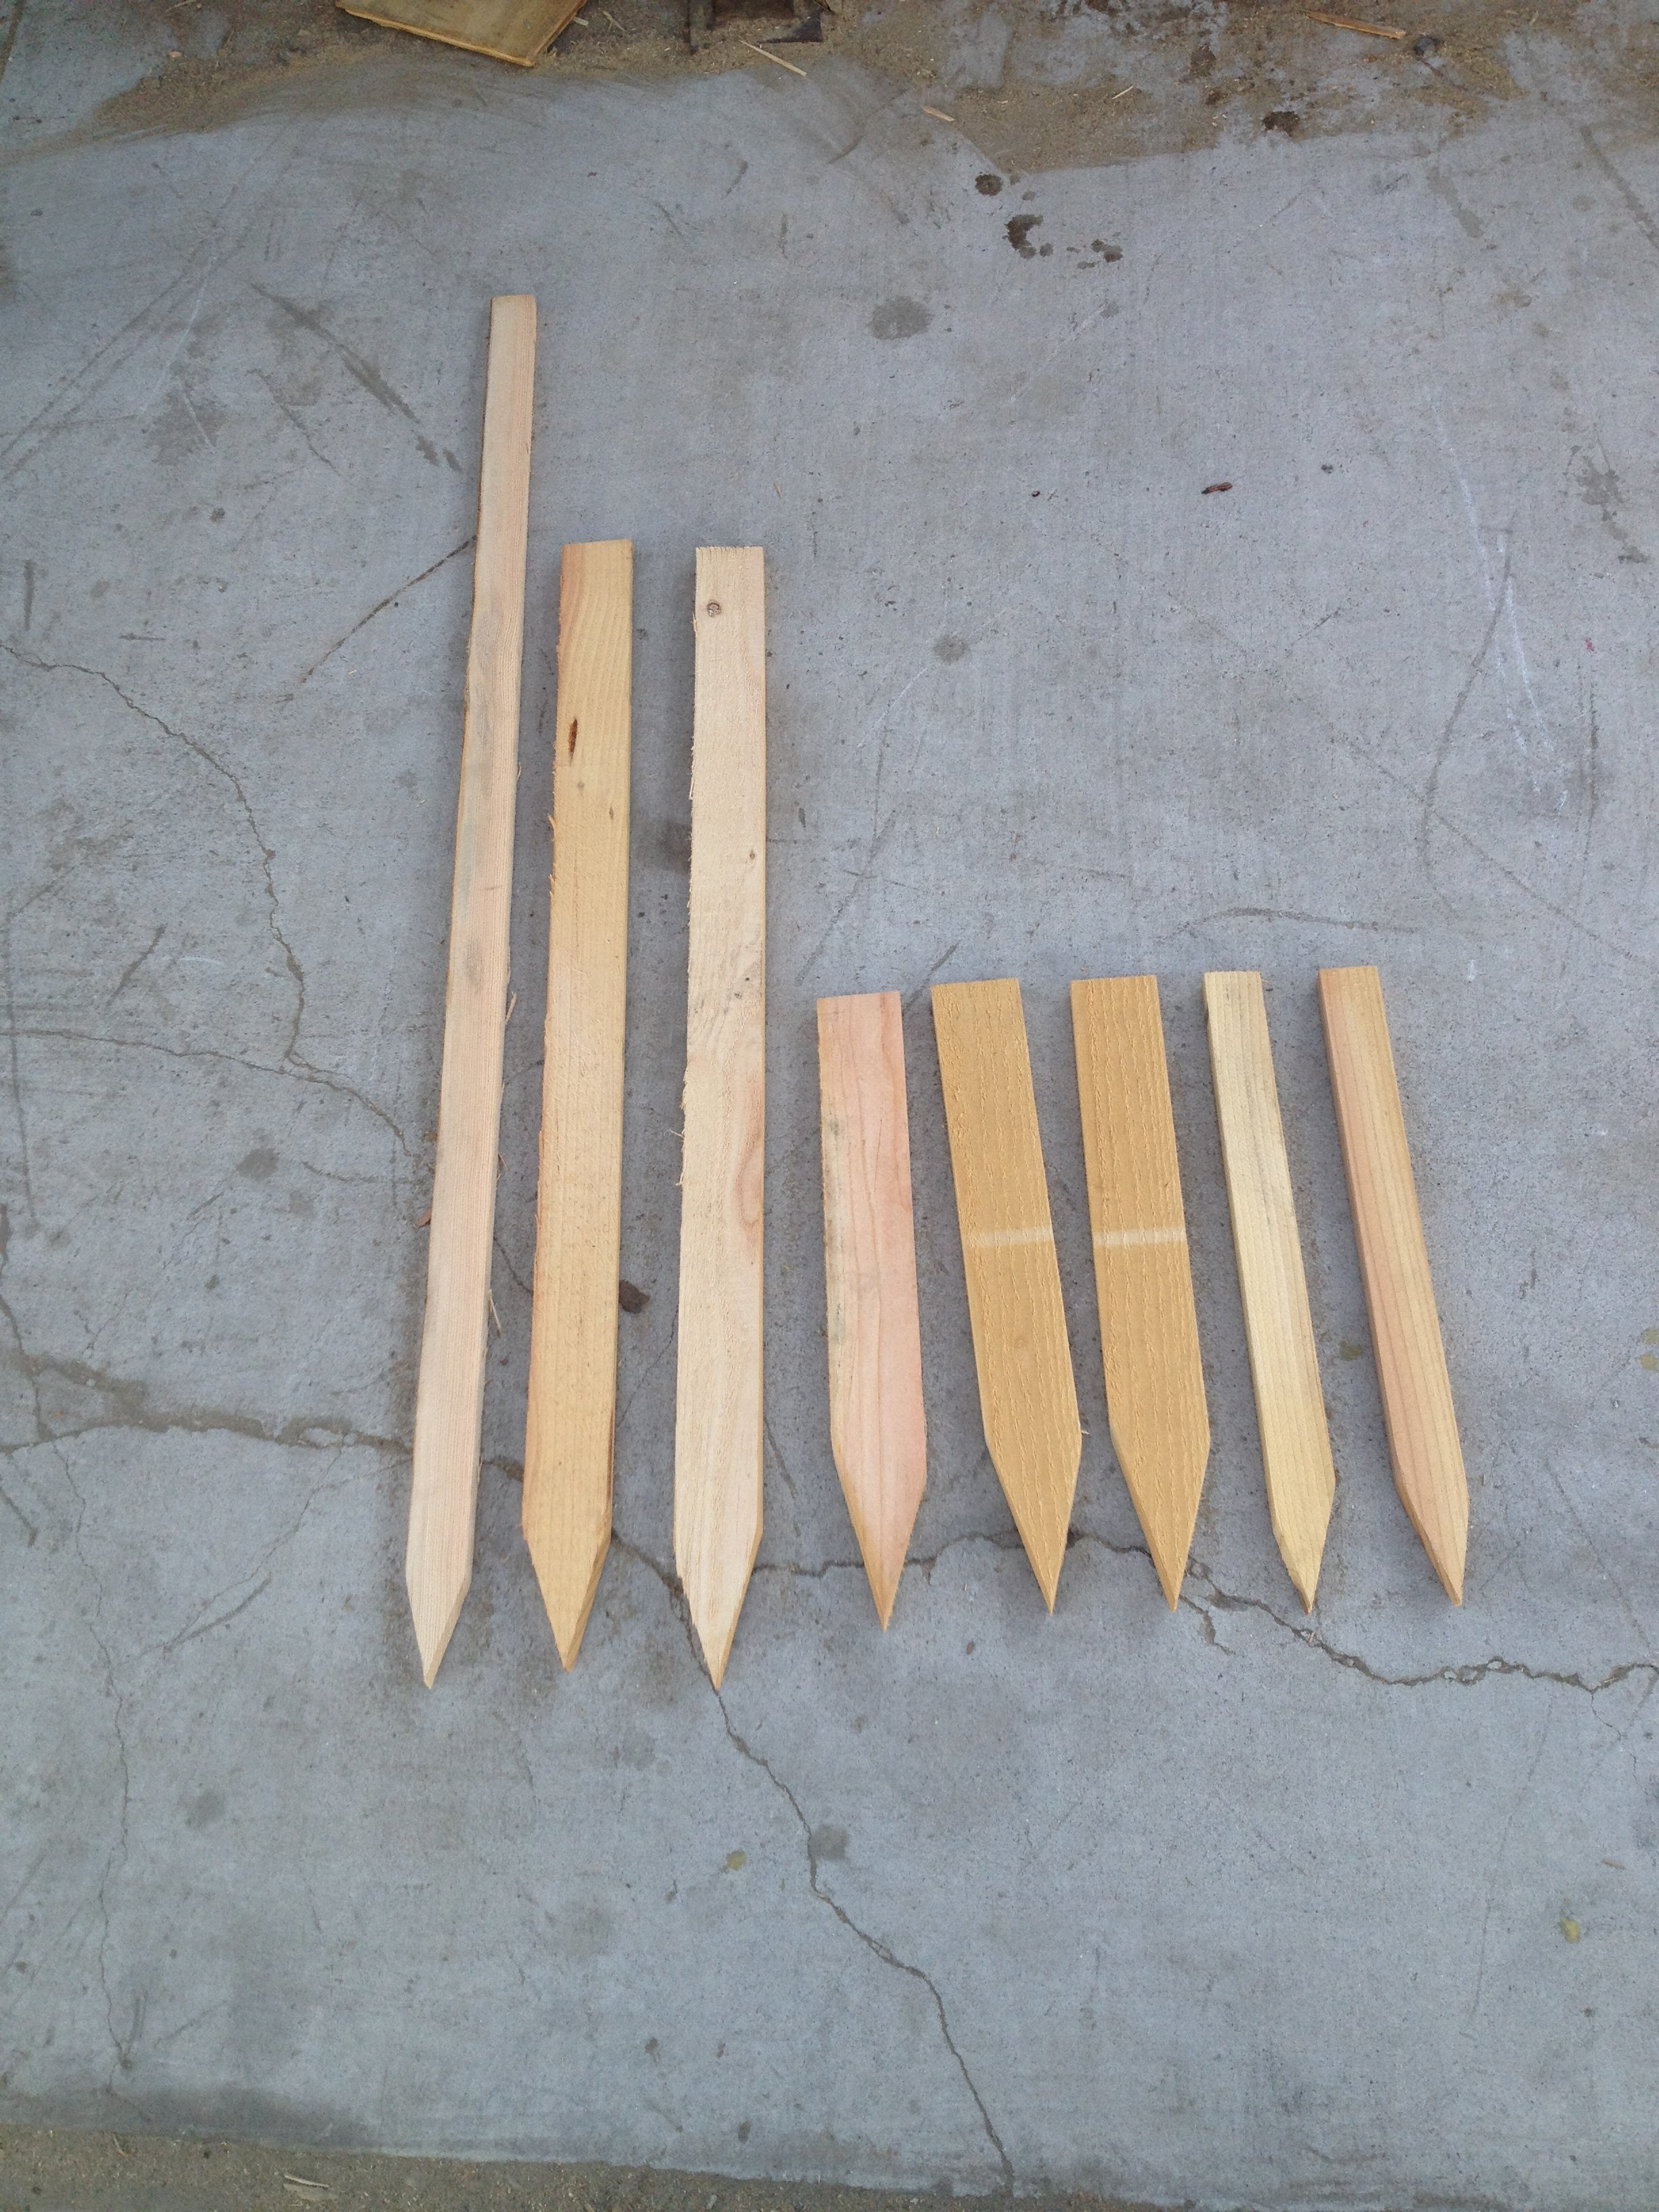 Different Sizes of Wooden Stakes||||